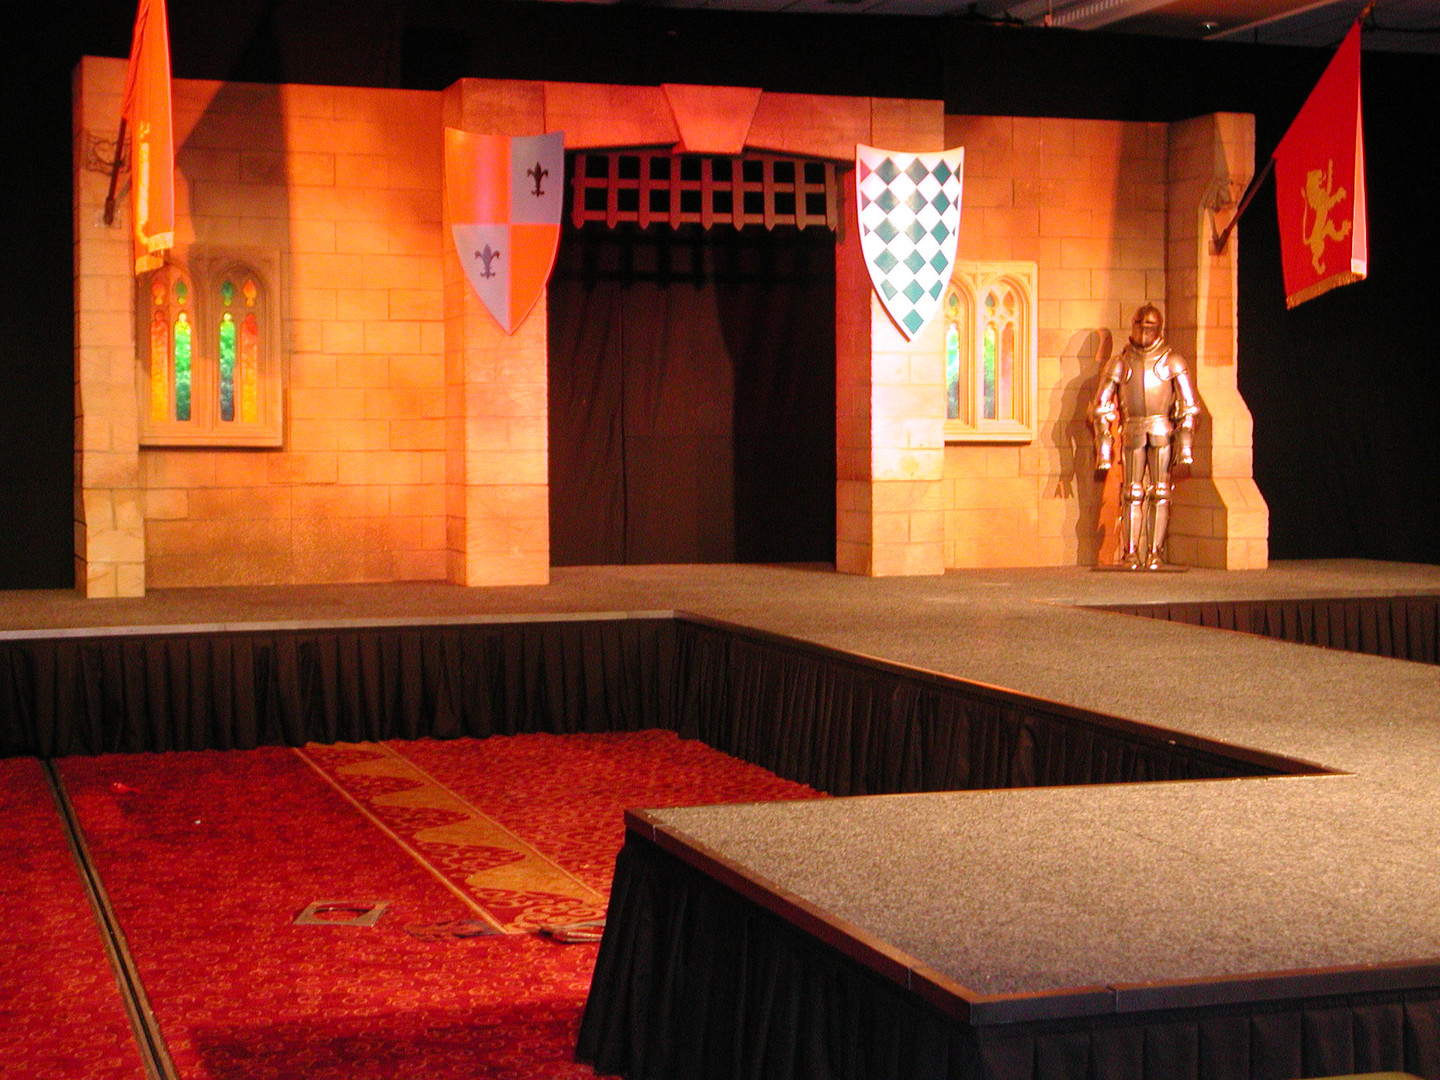 Medieval Archway Stage Set - Prop Hire - Staging Services